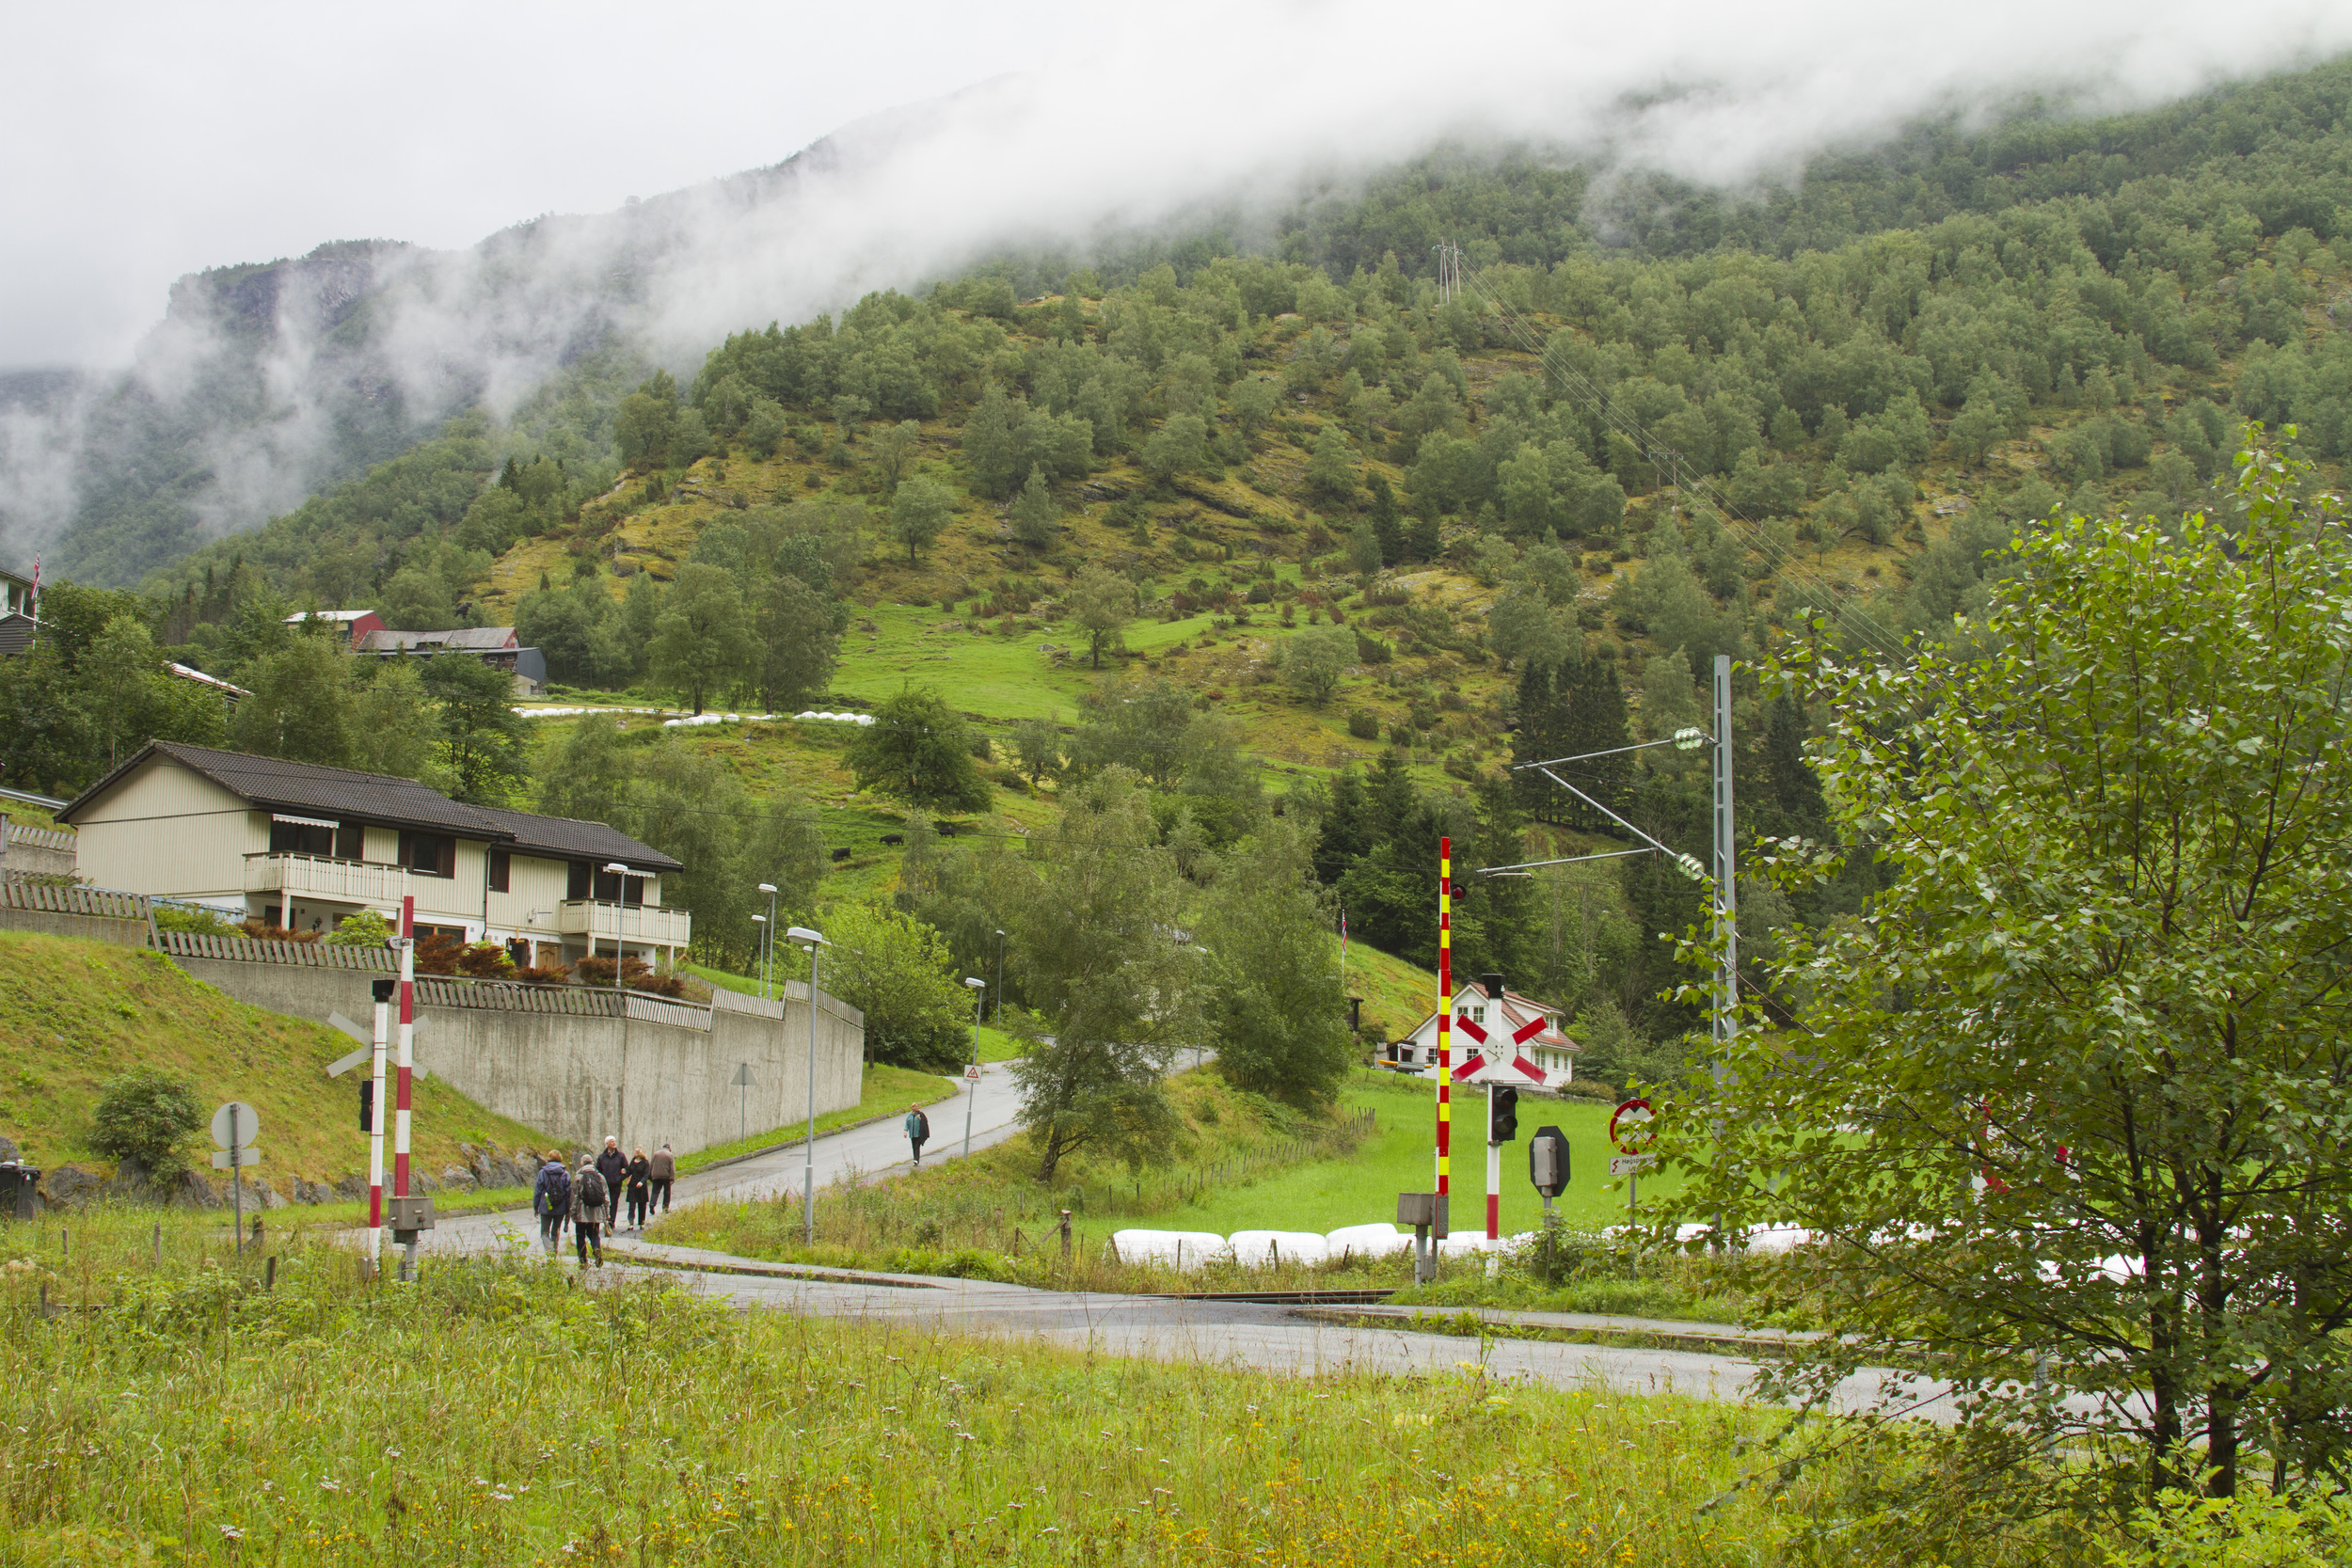 4. Walkers can be seen following the winding road up towards the steep mountain slope with the railway safety barriers opened up. Again the characteristic mist covers the trees in the upper-most part of the image.